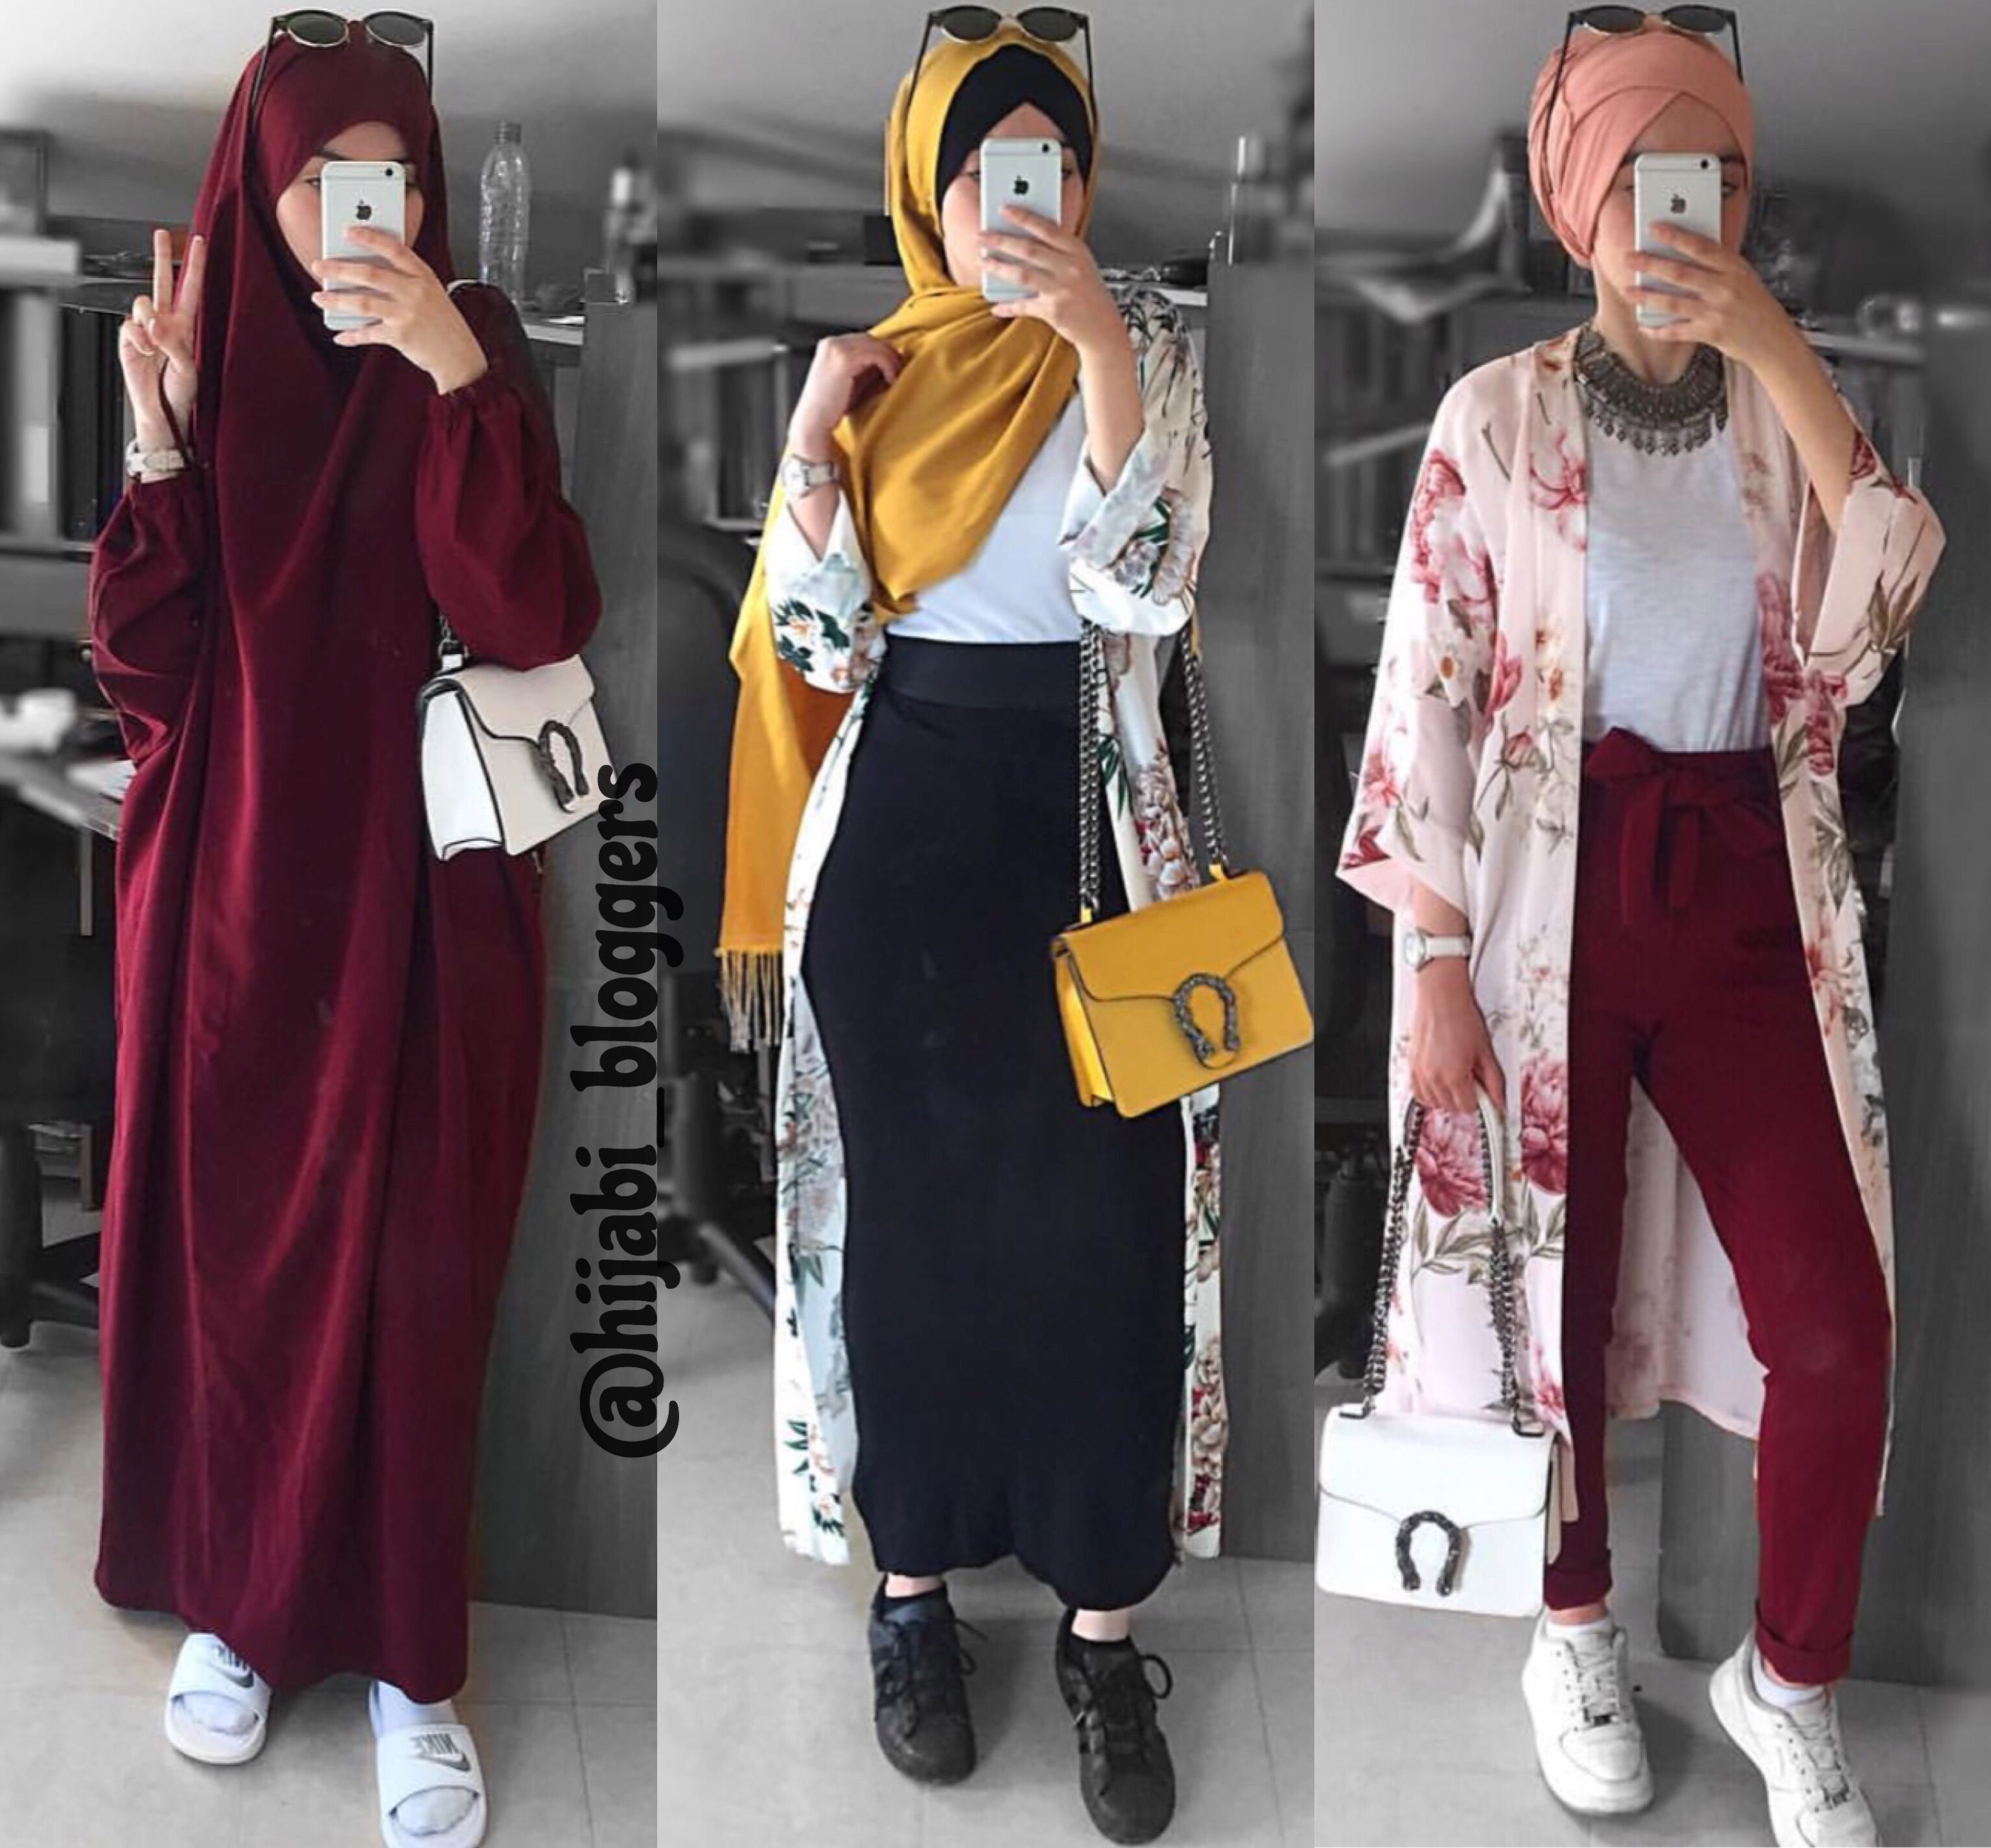 Pin by Maissa B on Istanbul  Hijabi outfits casual, Muslimah